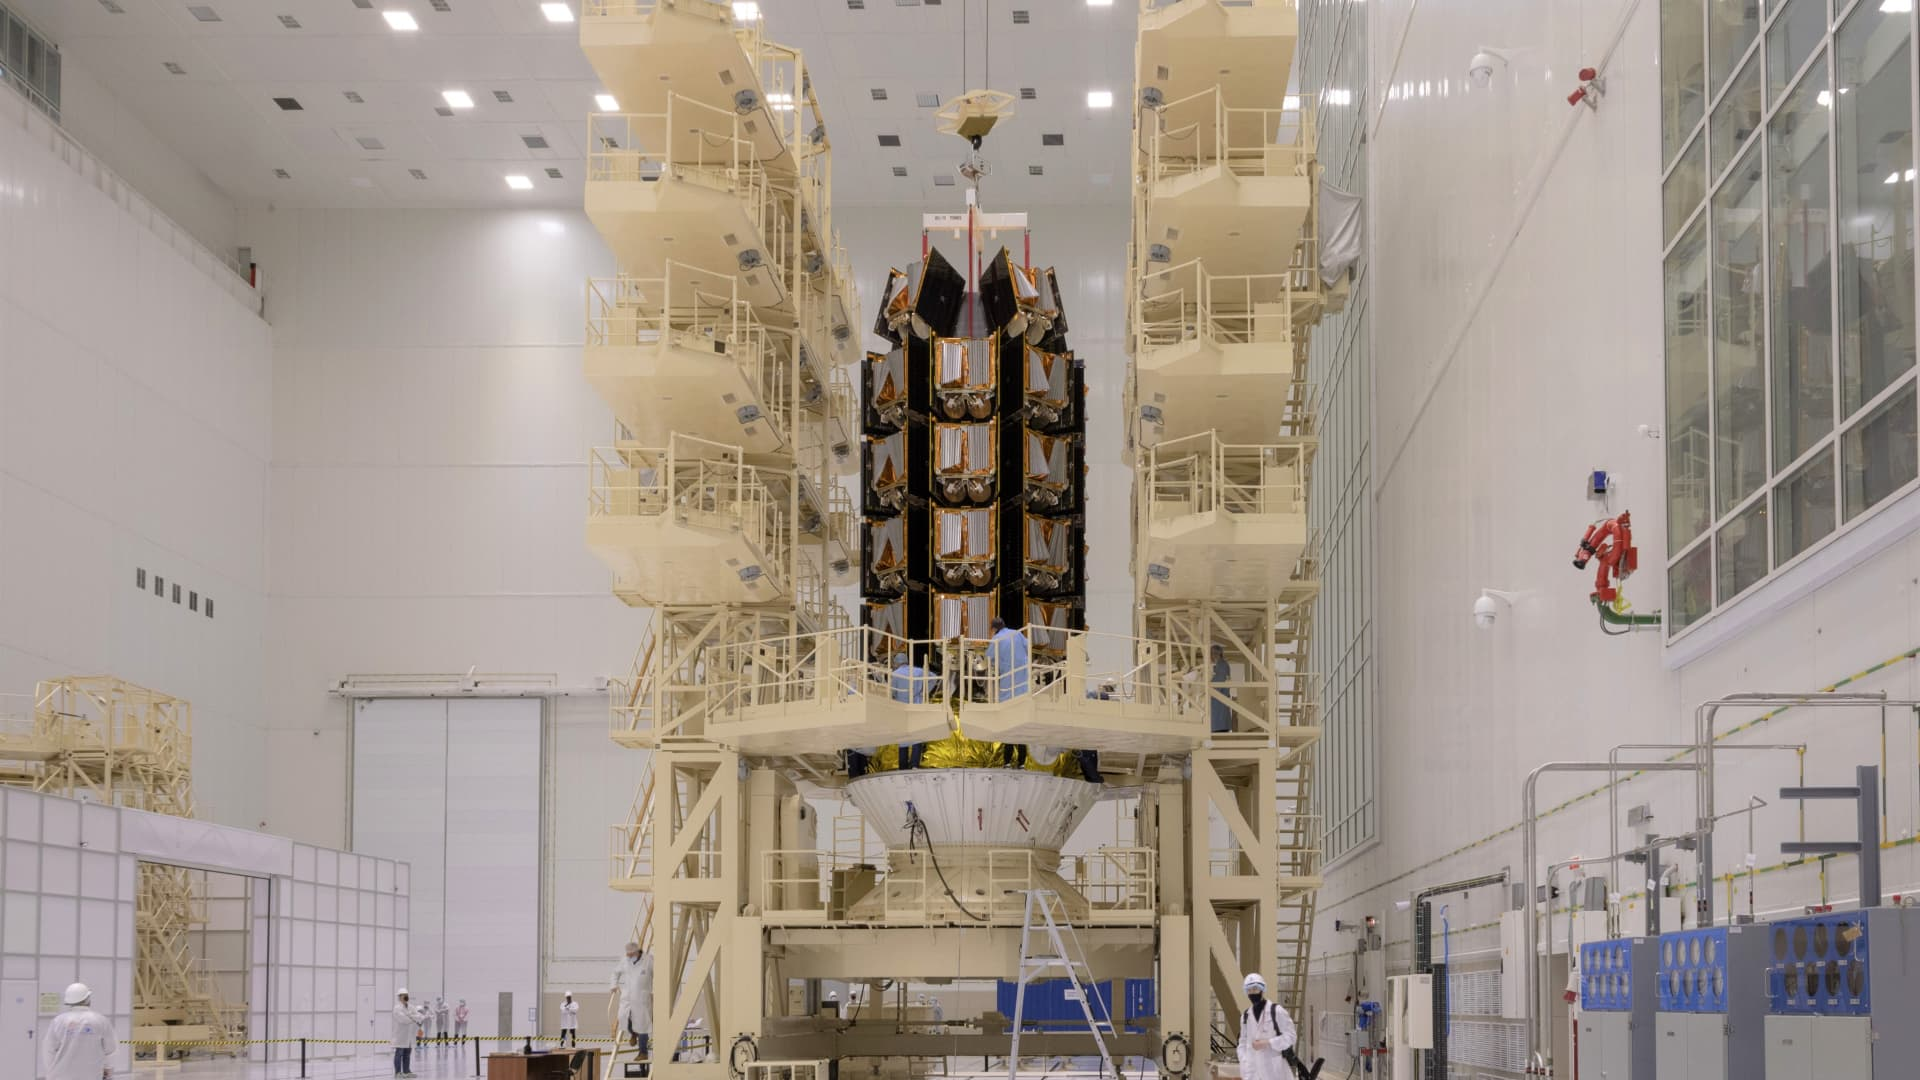 A stack of 36 OneWeb satellites being prepared ahead of its launch on March 25, 2020.